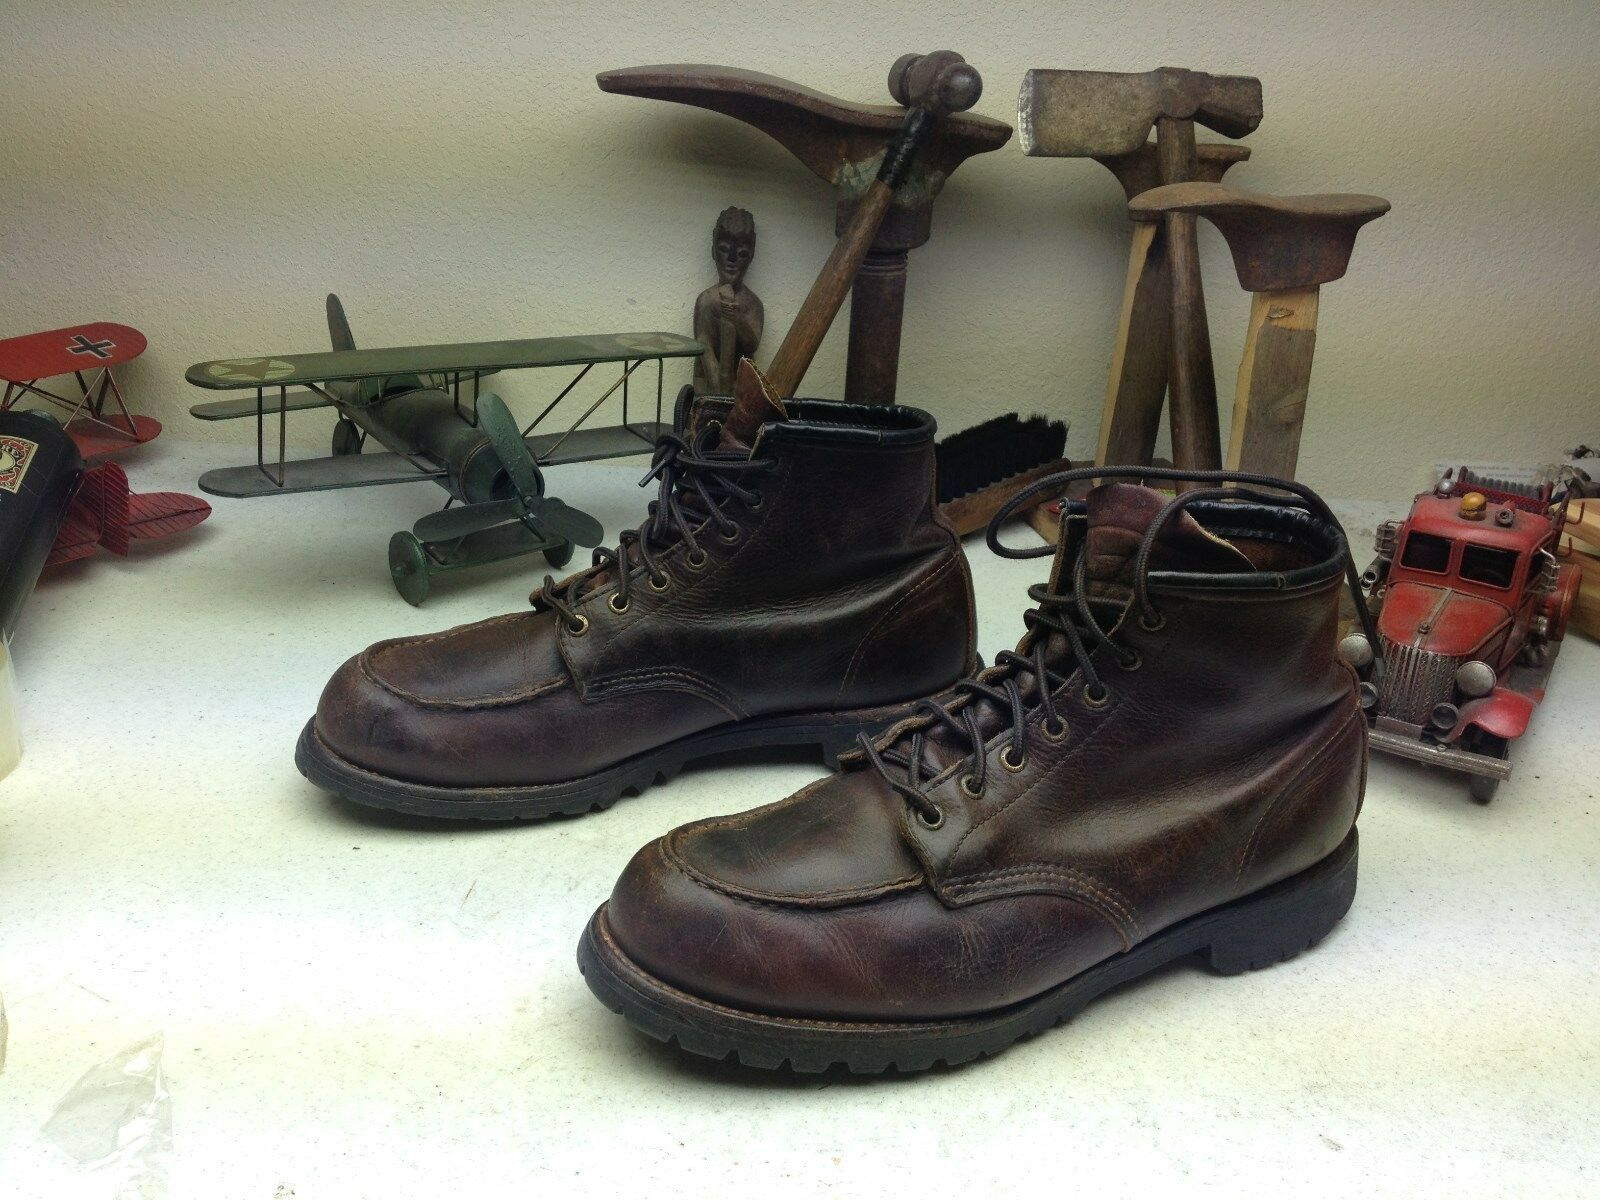 VINTAGE BROWN MADE IN USA RED WING DISTRESSED ENGINEER BOSS WORK BOOTS 11.5 D